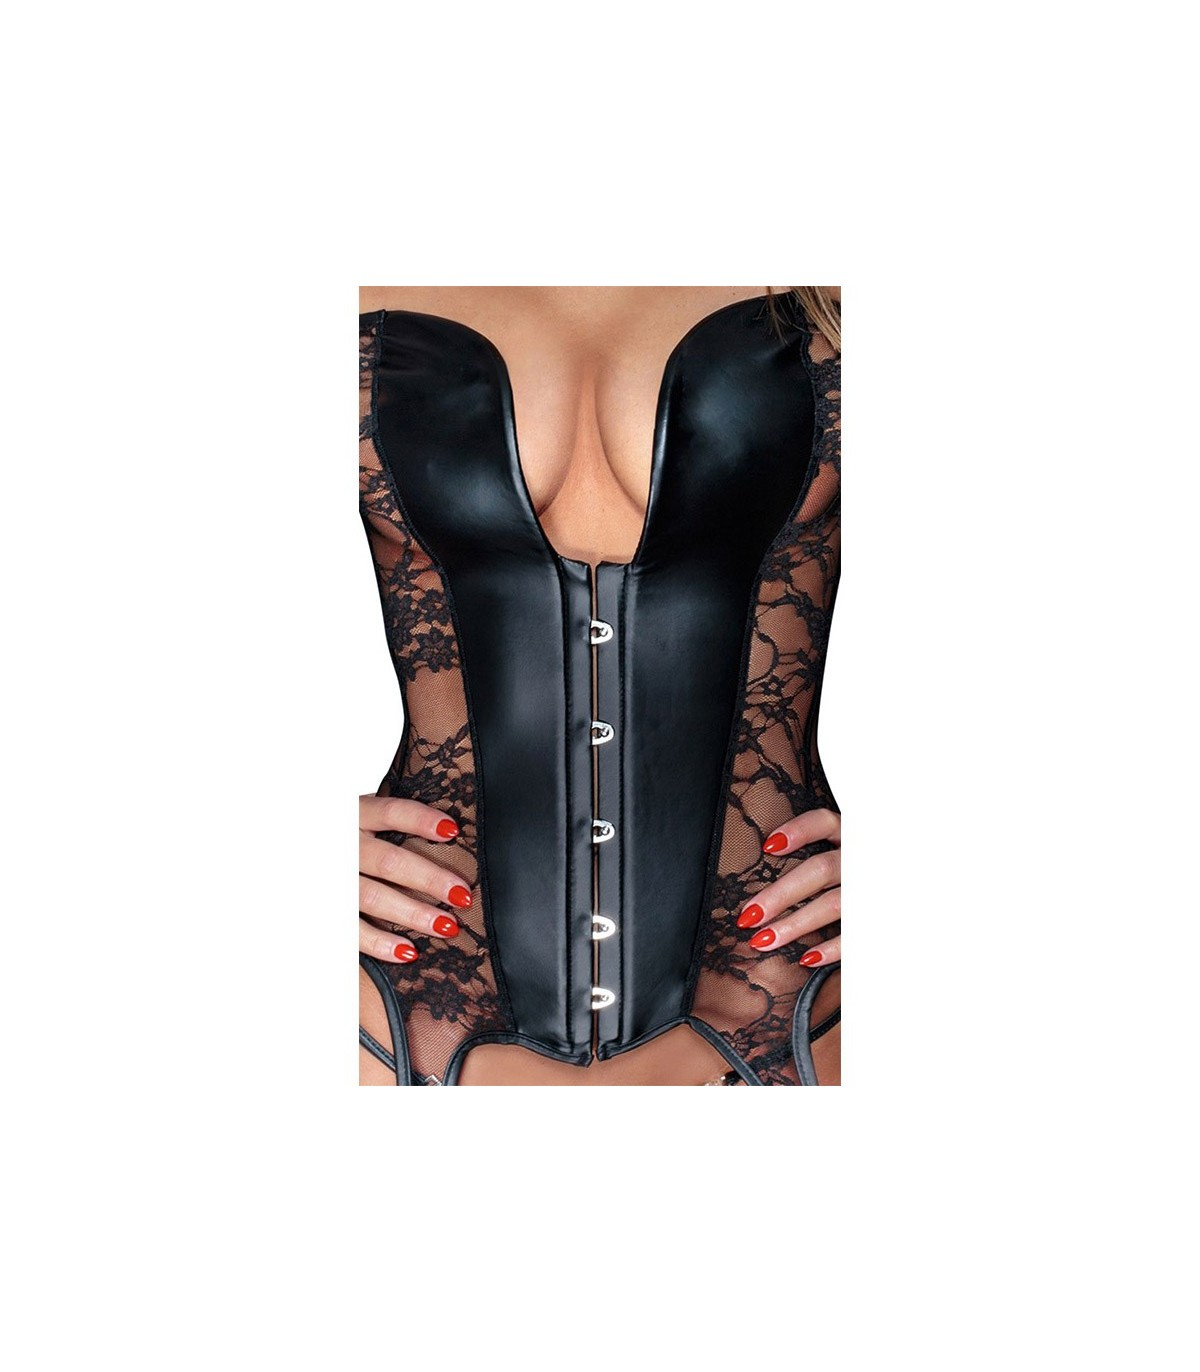 0fb2bf38c3 Sexy Steampunk Overbust Leather Corset Lingerie